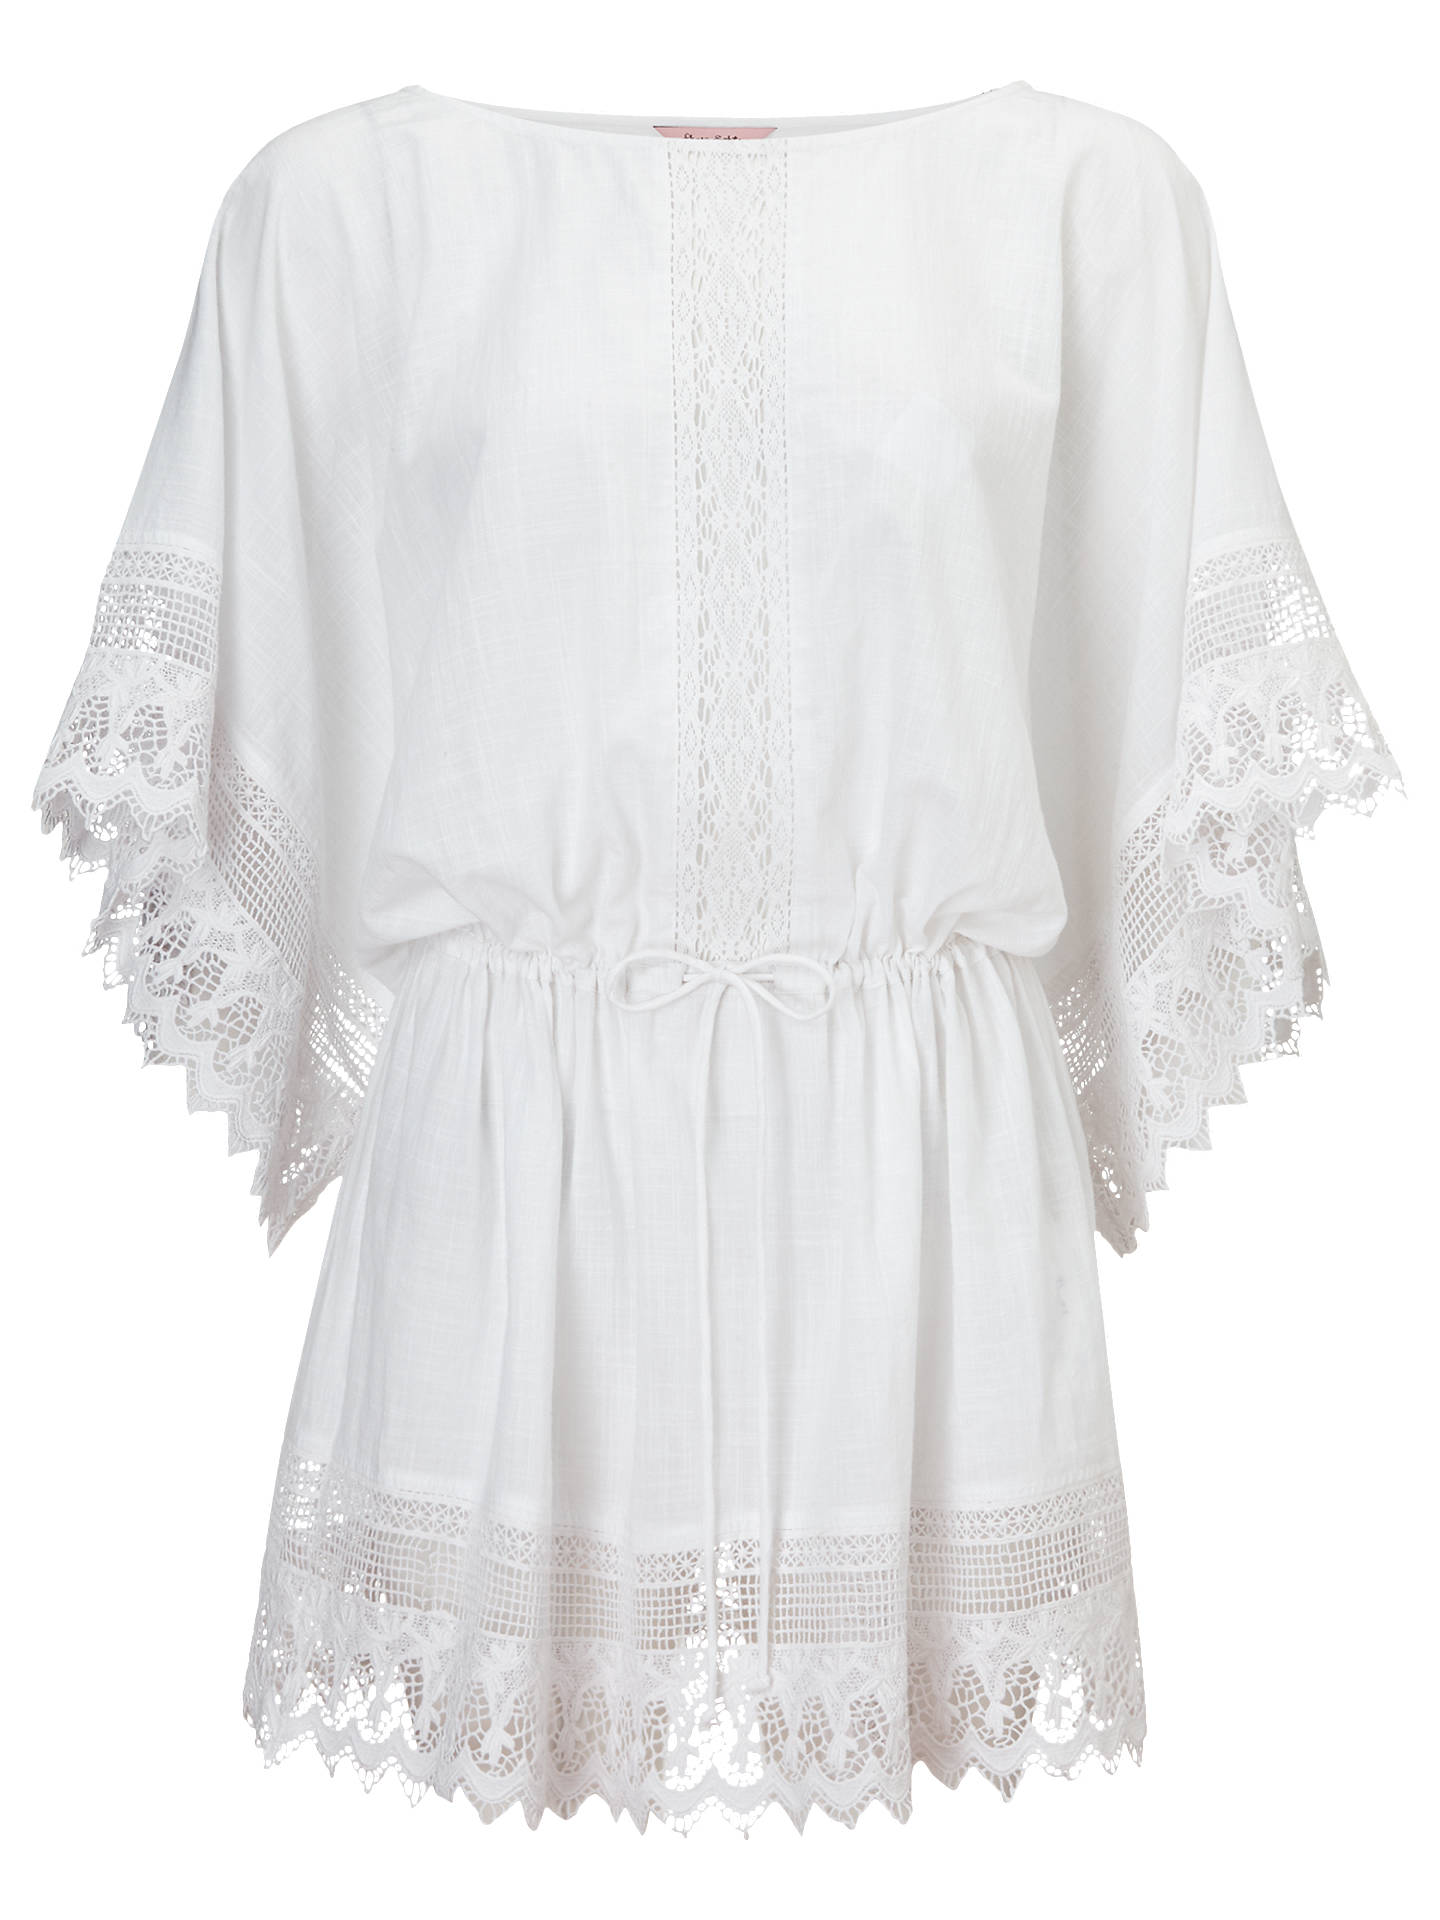 722de0d83136 BuyPhase Eight Calista Kaftan Dress, White, S Online at johnlewis.com ...